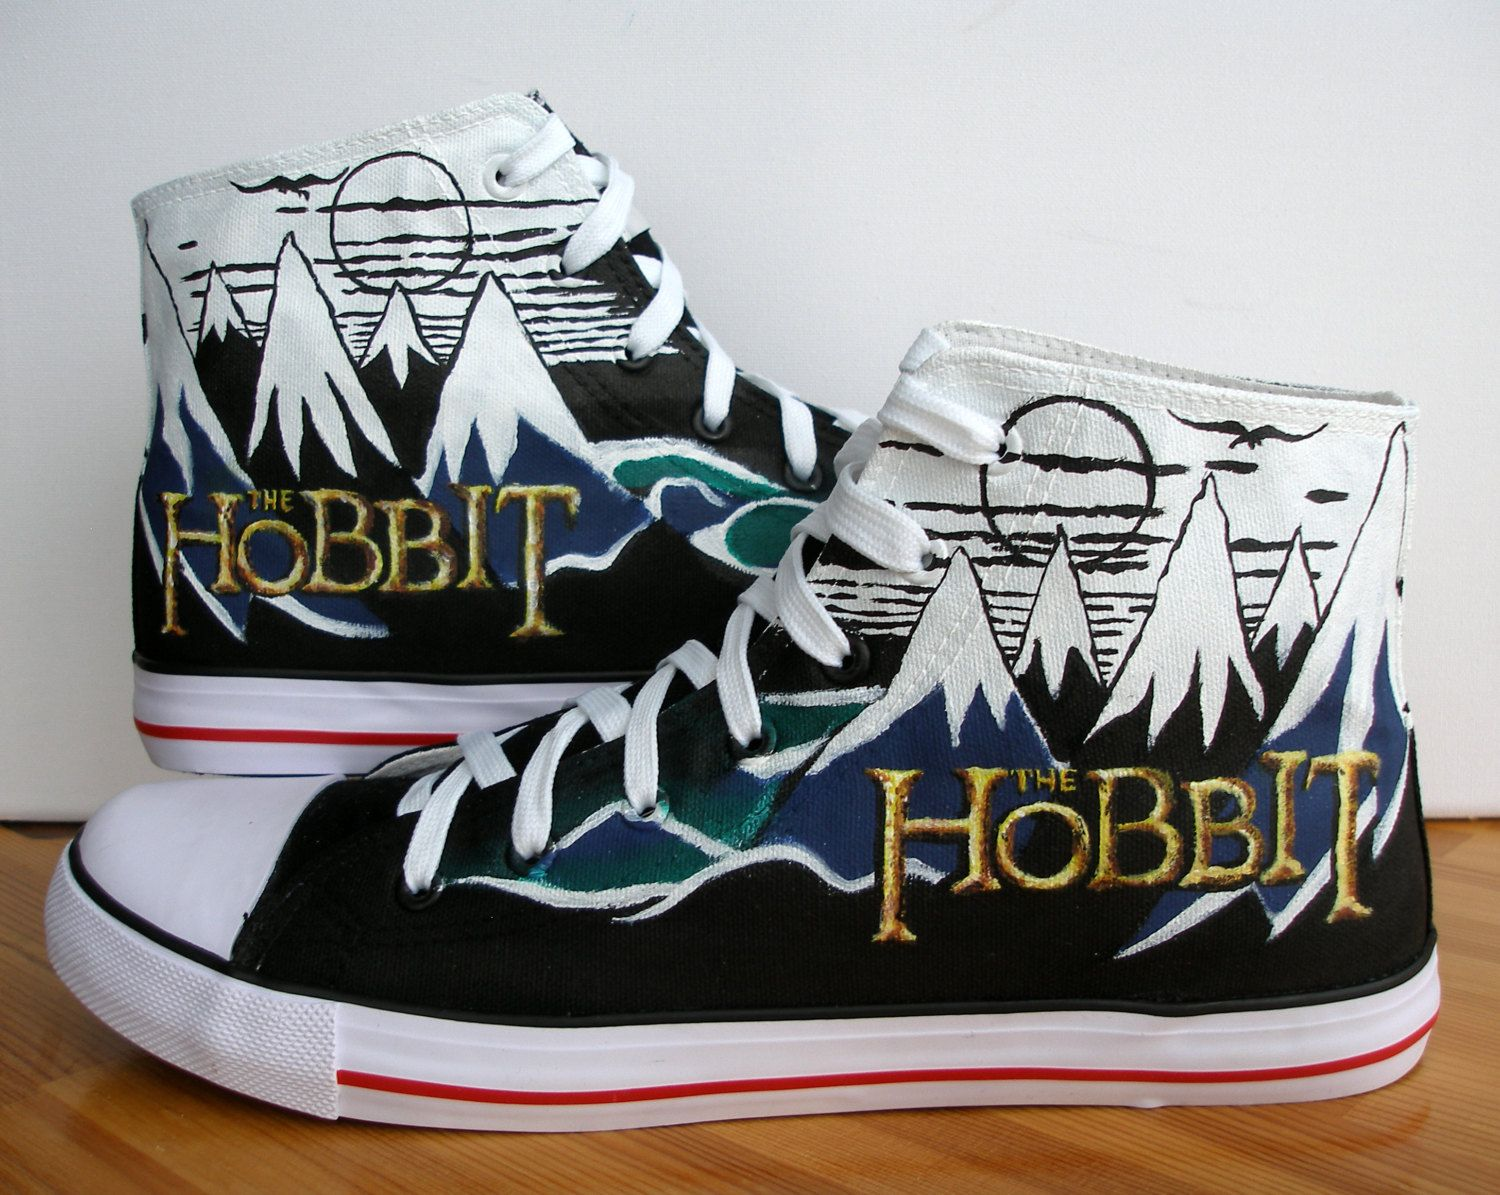 Lord of the Rings Custom Converse shoes